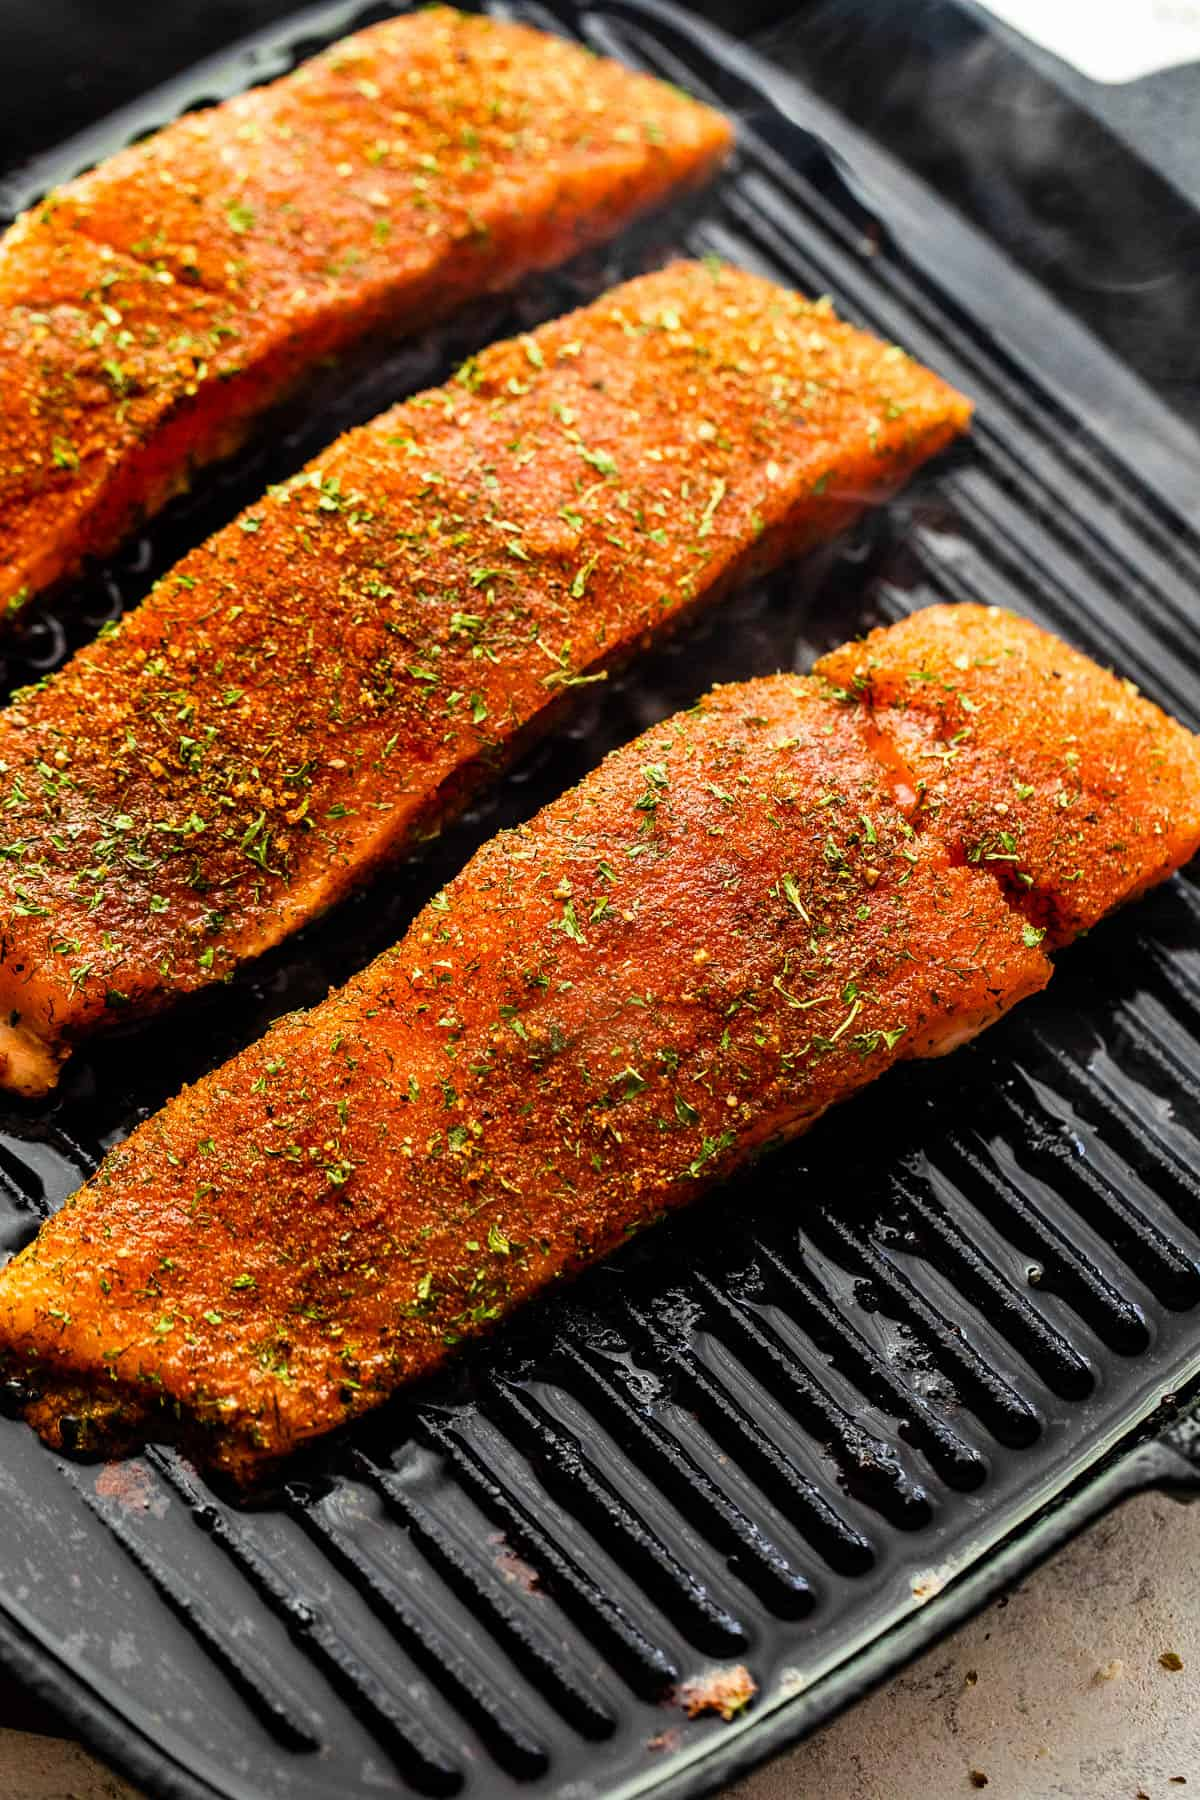 grilling salmon fillets on a black grill pan